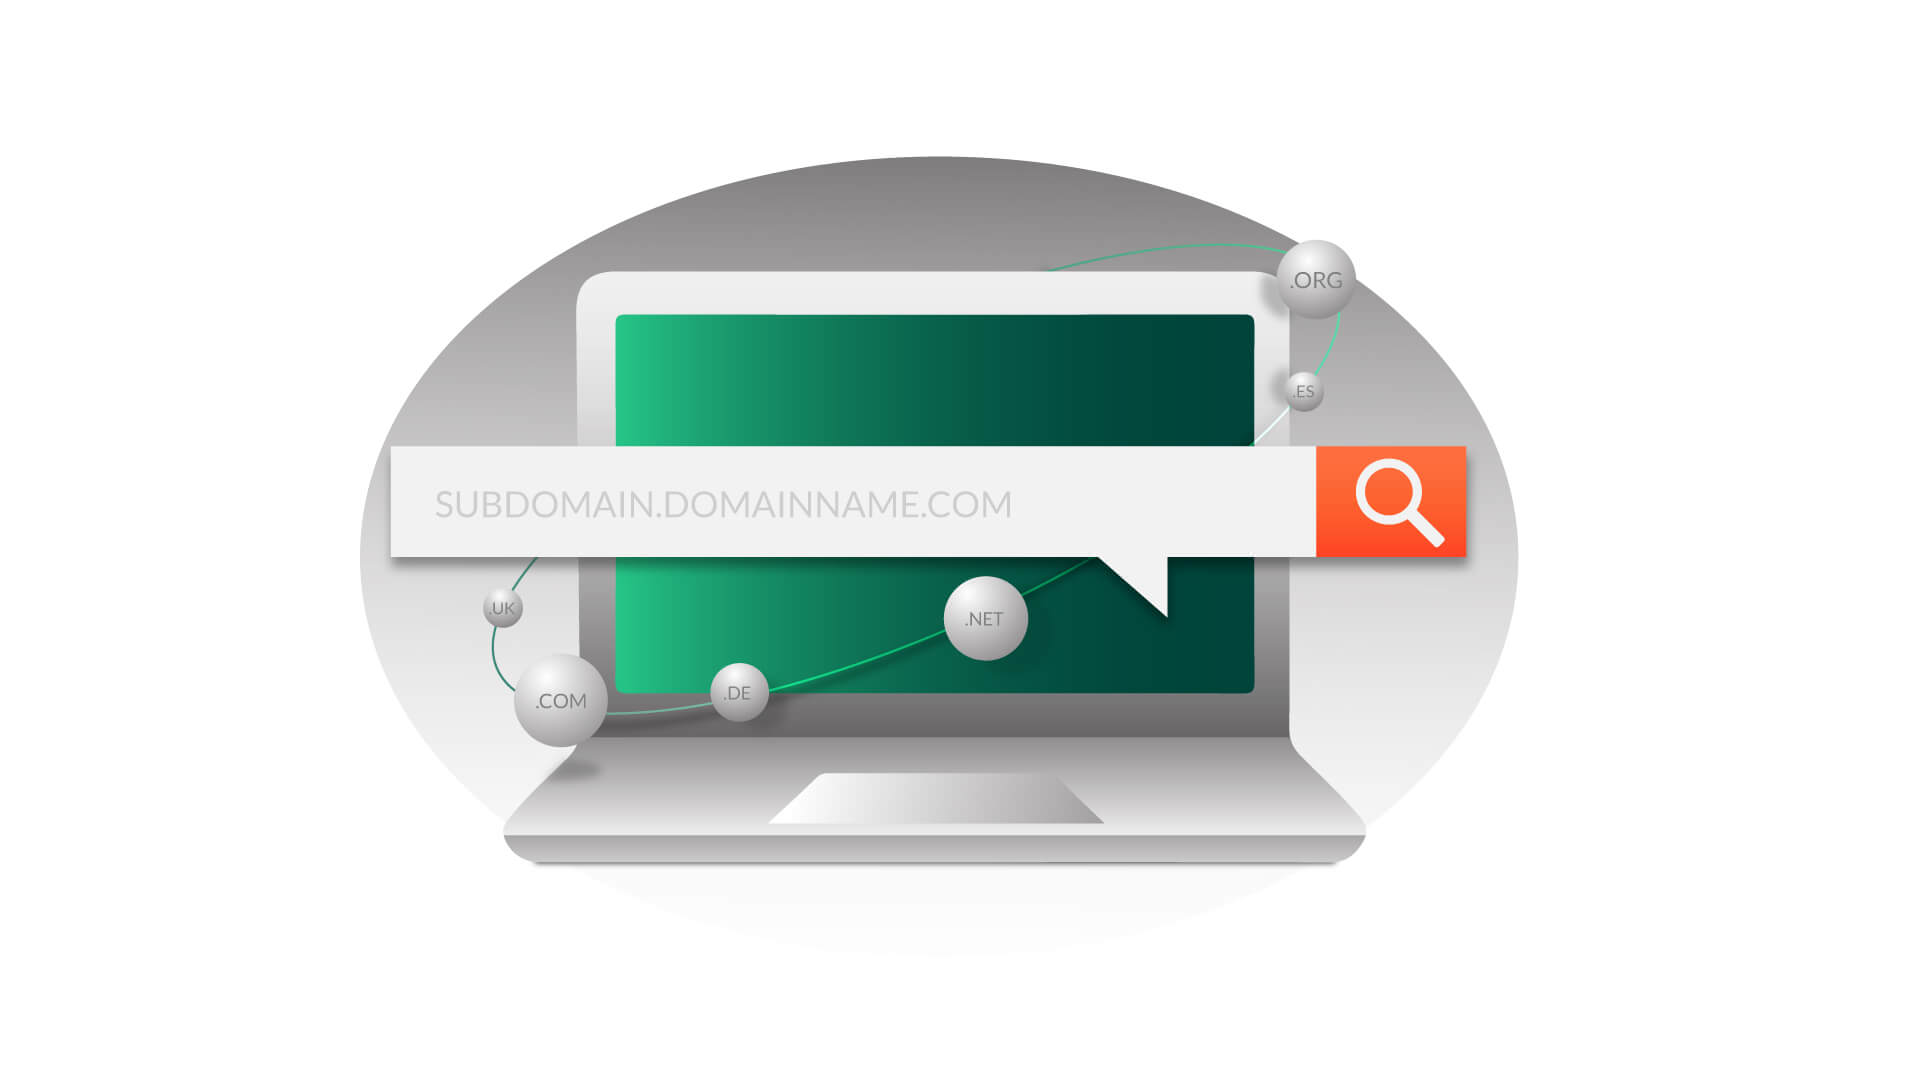 Learn all about what is a subdomain and how to use it